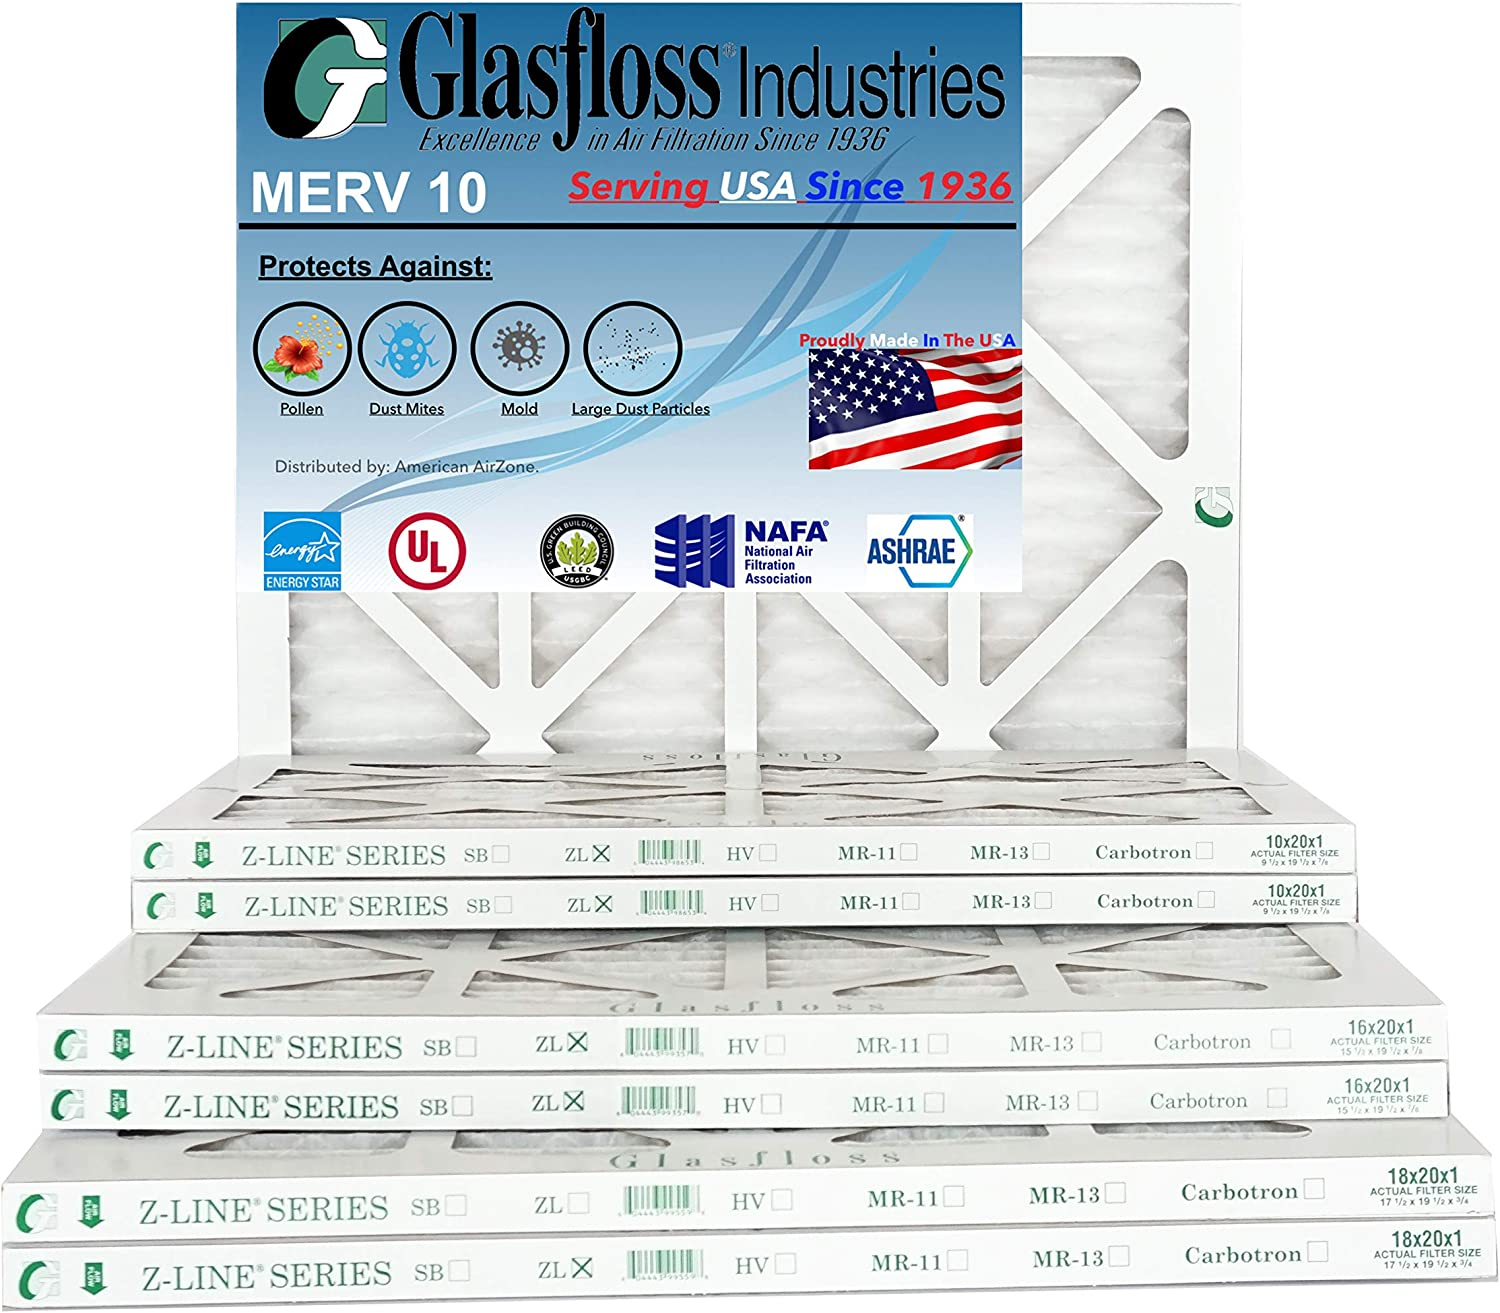 Glasfloss 16x20x1 - 1 Inch MERV 10 - (Pack of 12) - AC or HVAC Pleated Air Filter - Furnace Air Filter - For Home or Office - Made In The USA (Actual Size: 15.5x19.5x7/8 Inch)